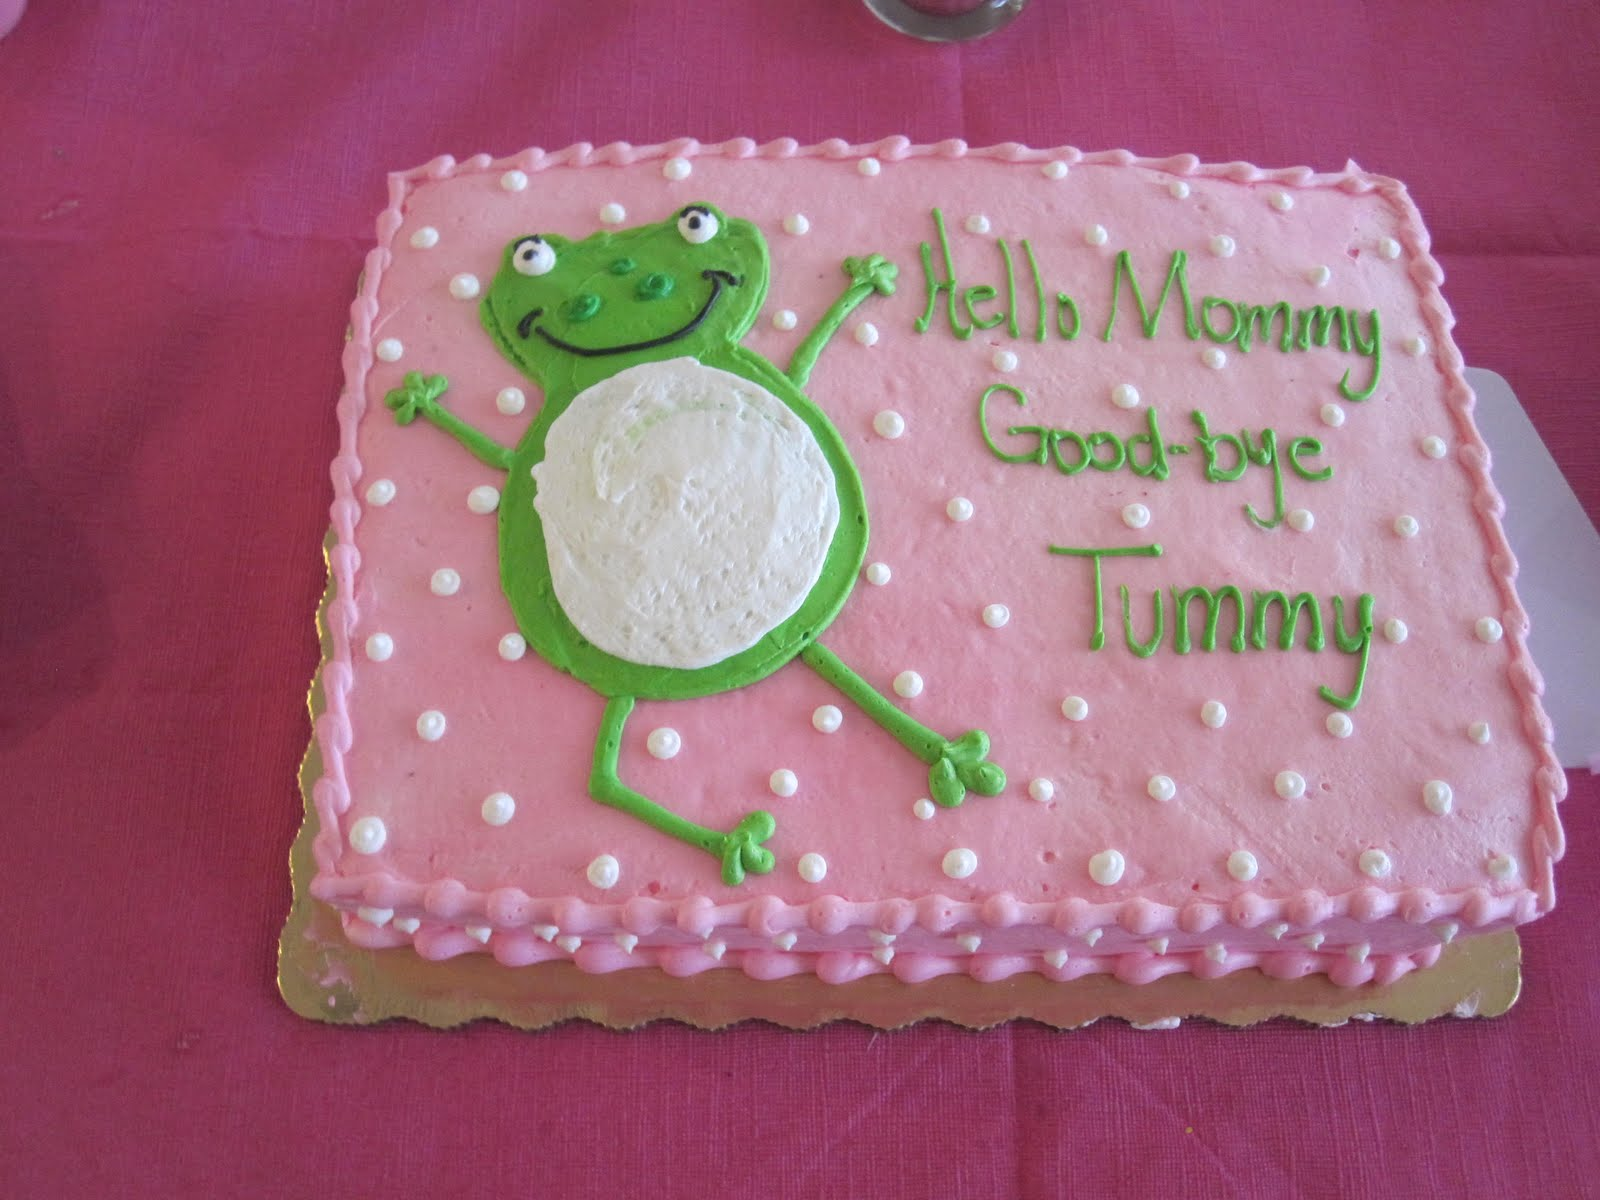 Baby Shower Cakes: Baby Shower Cakes In Publix